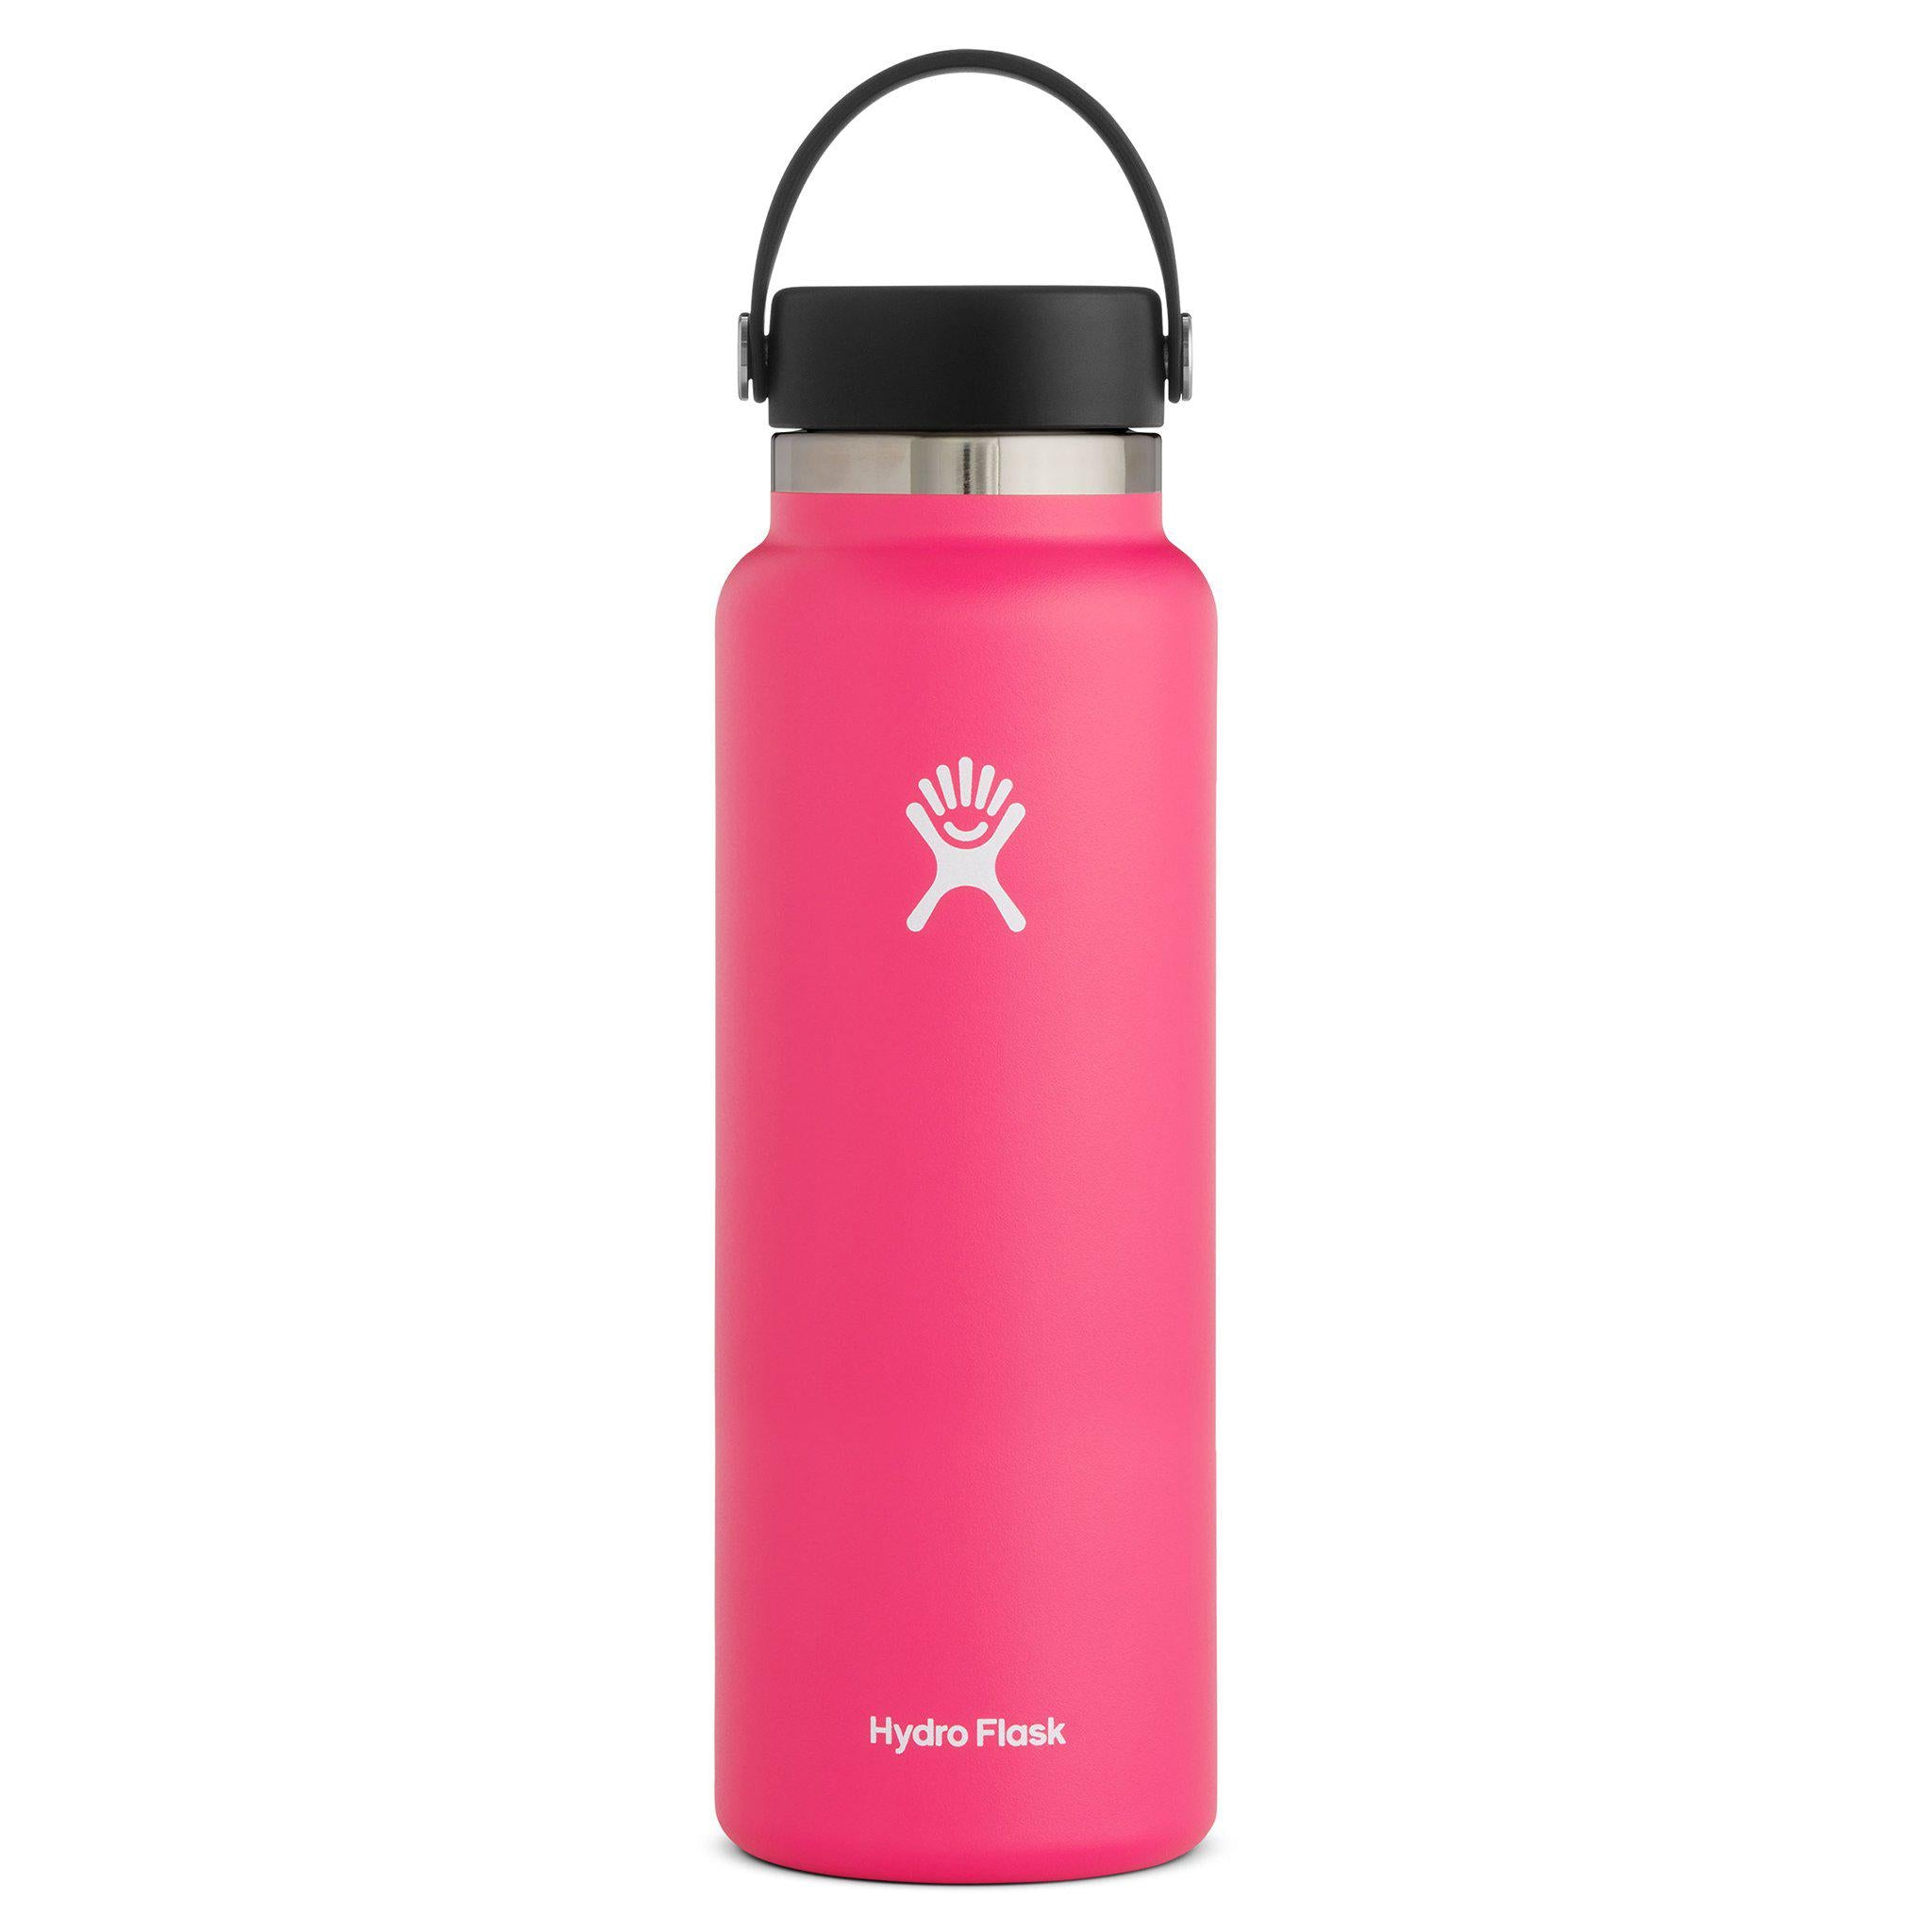 Hydro Flask 40oz Wide Mouth Water Bottle